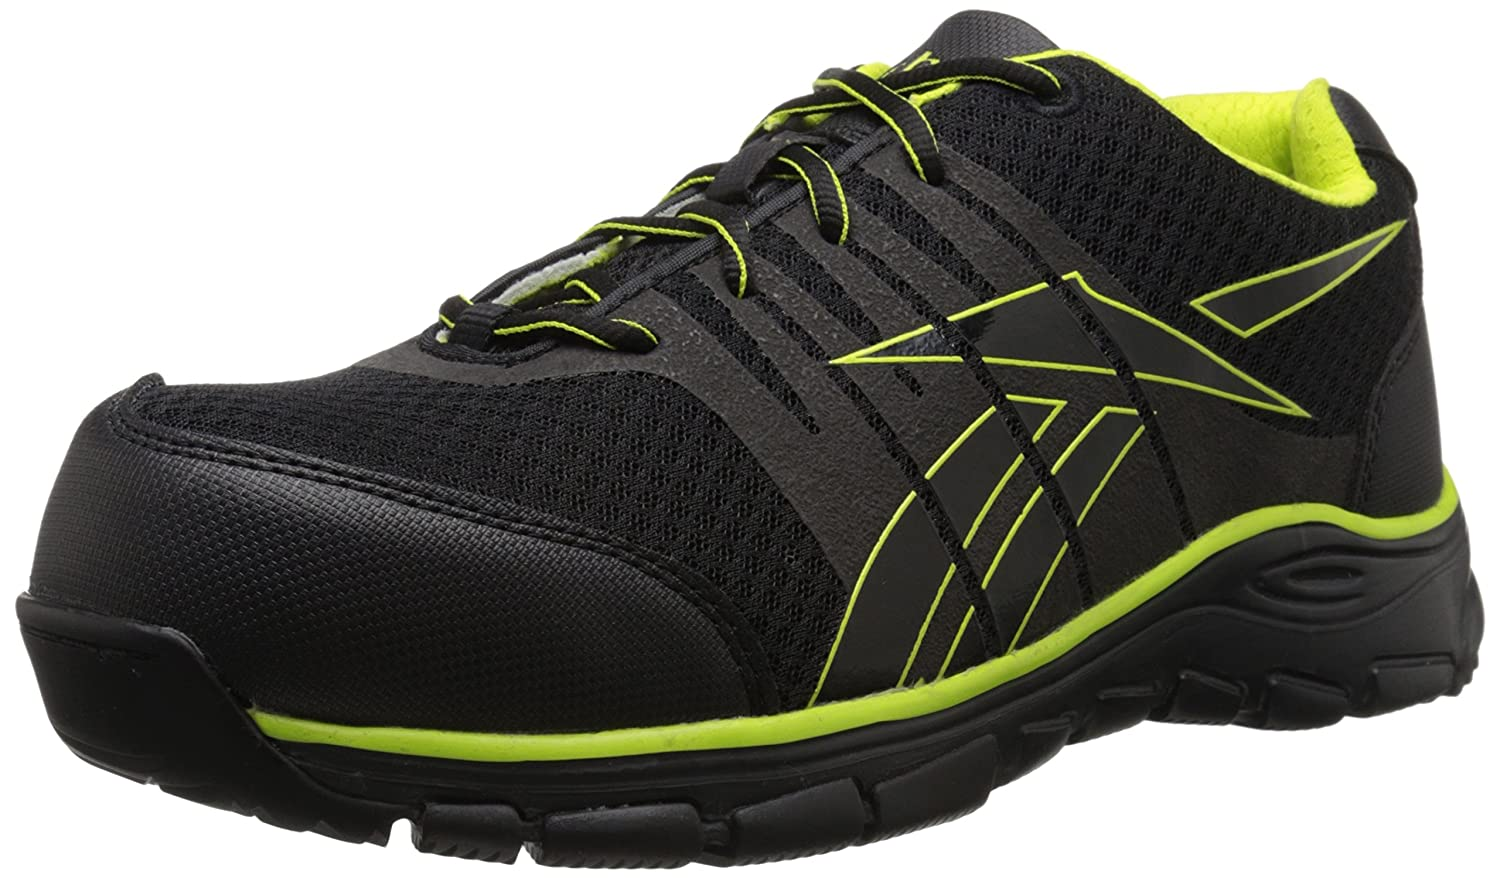 2329eb76249b Amazon.com  Reebok Work Men s Arion RB4501 ESD Athletic Safety Shoe  Shoes